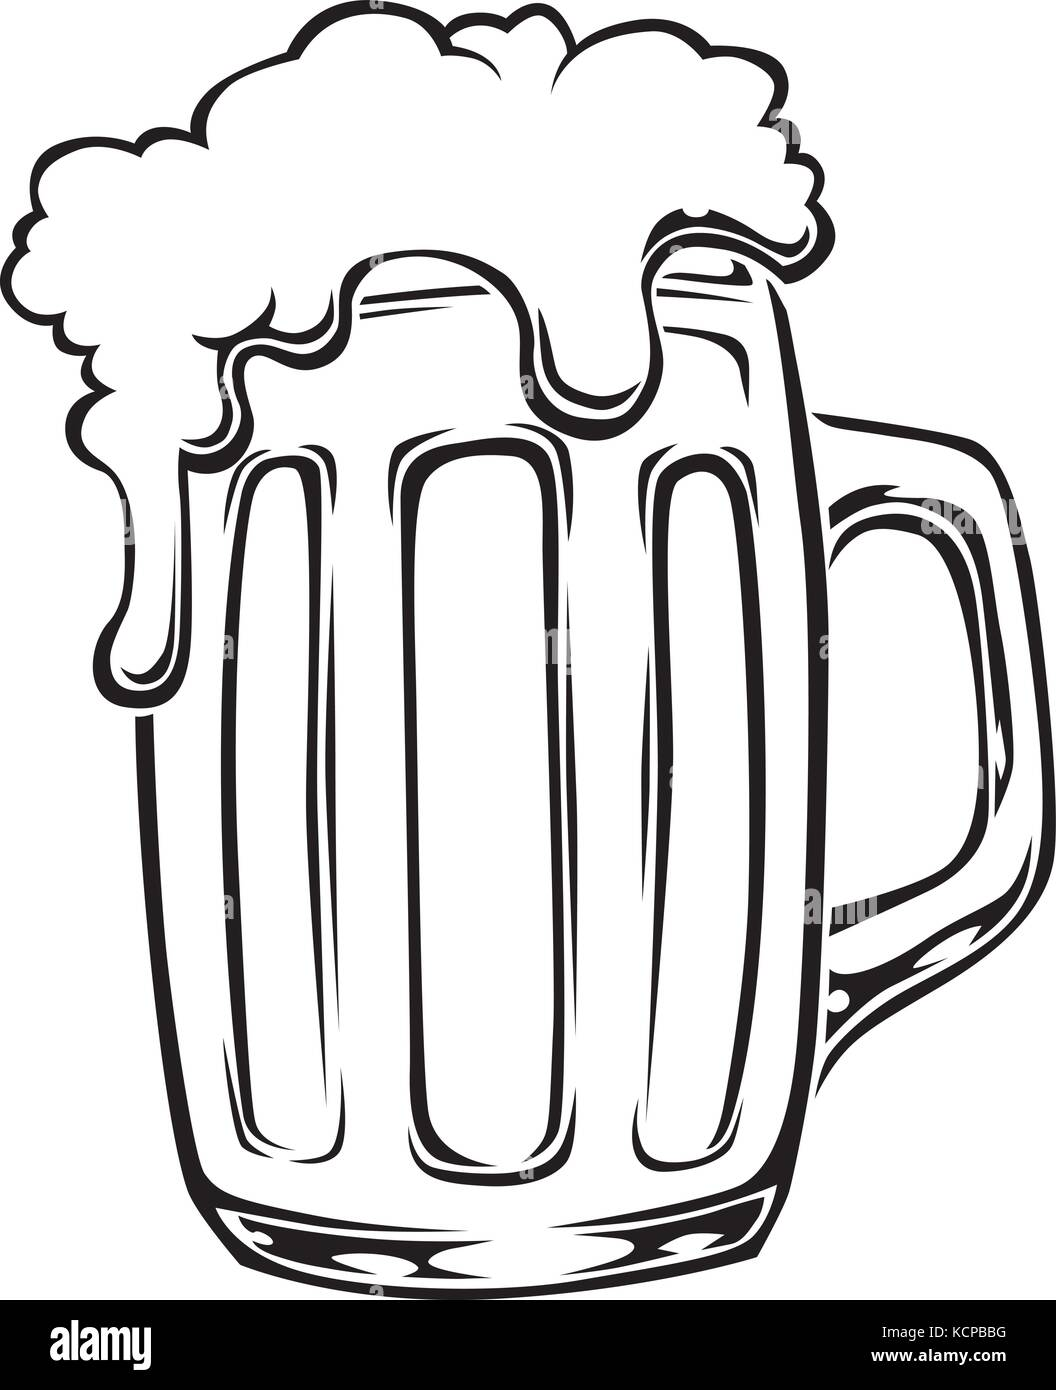 Vector illustration of a stylized beer mug stock vector for Immagini vector